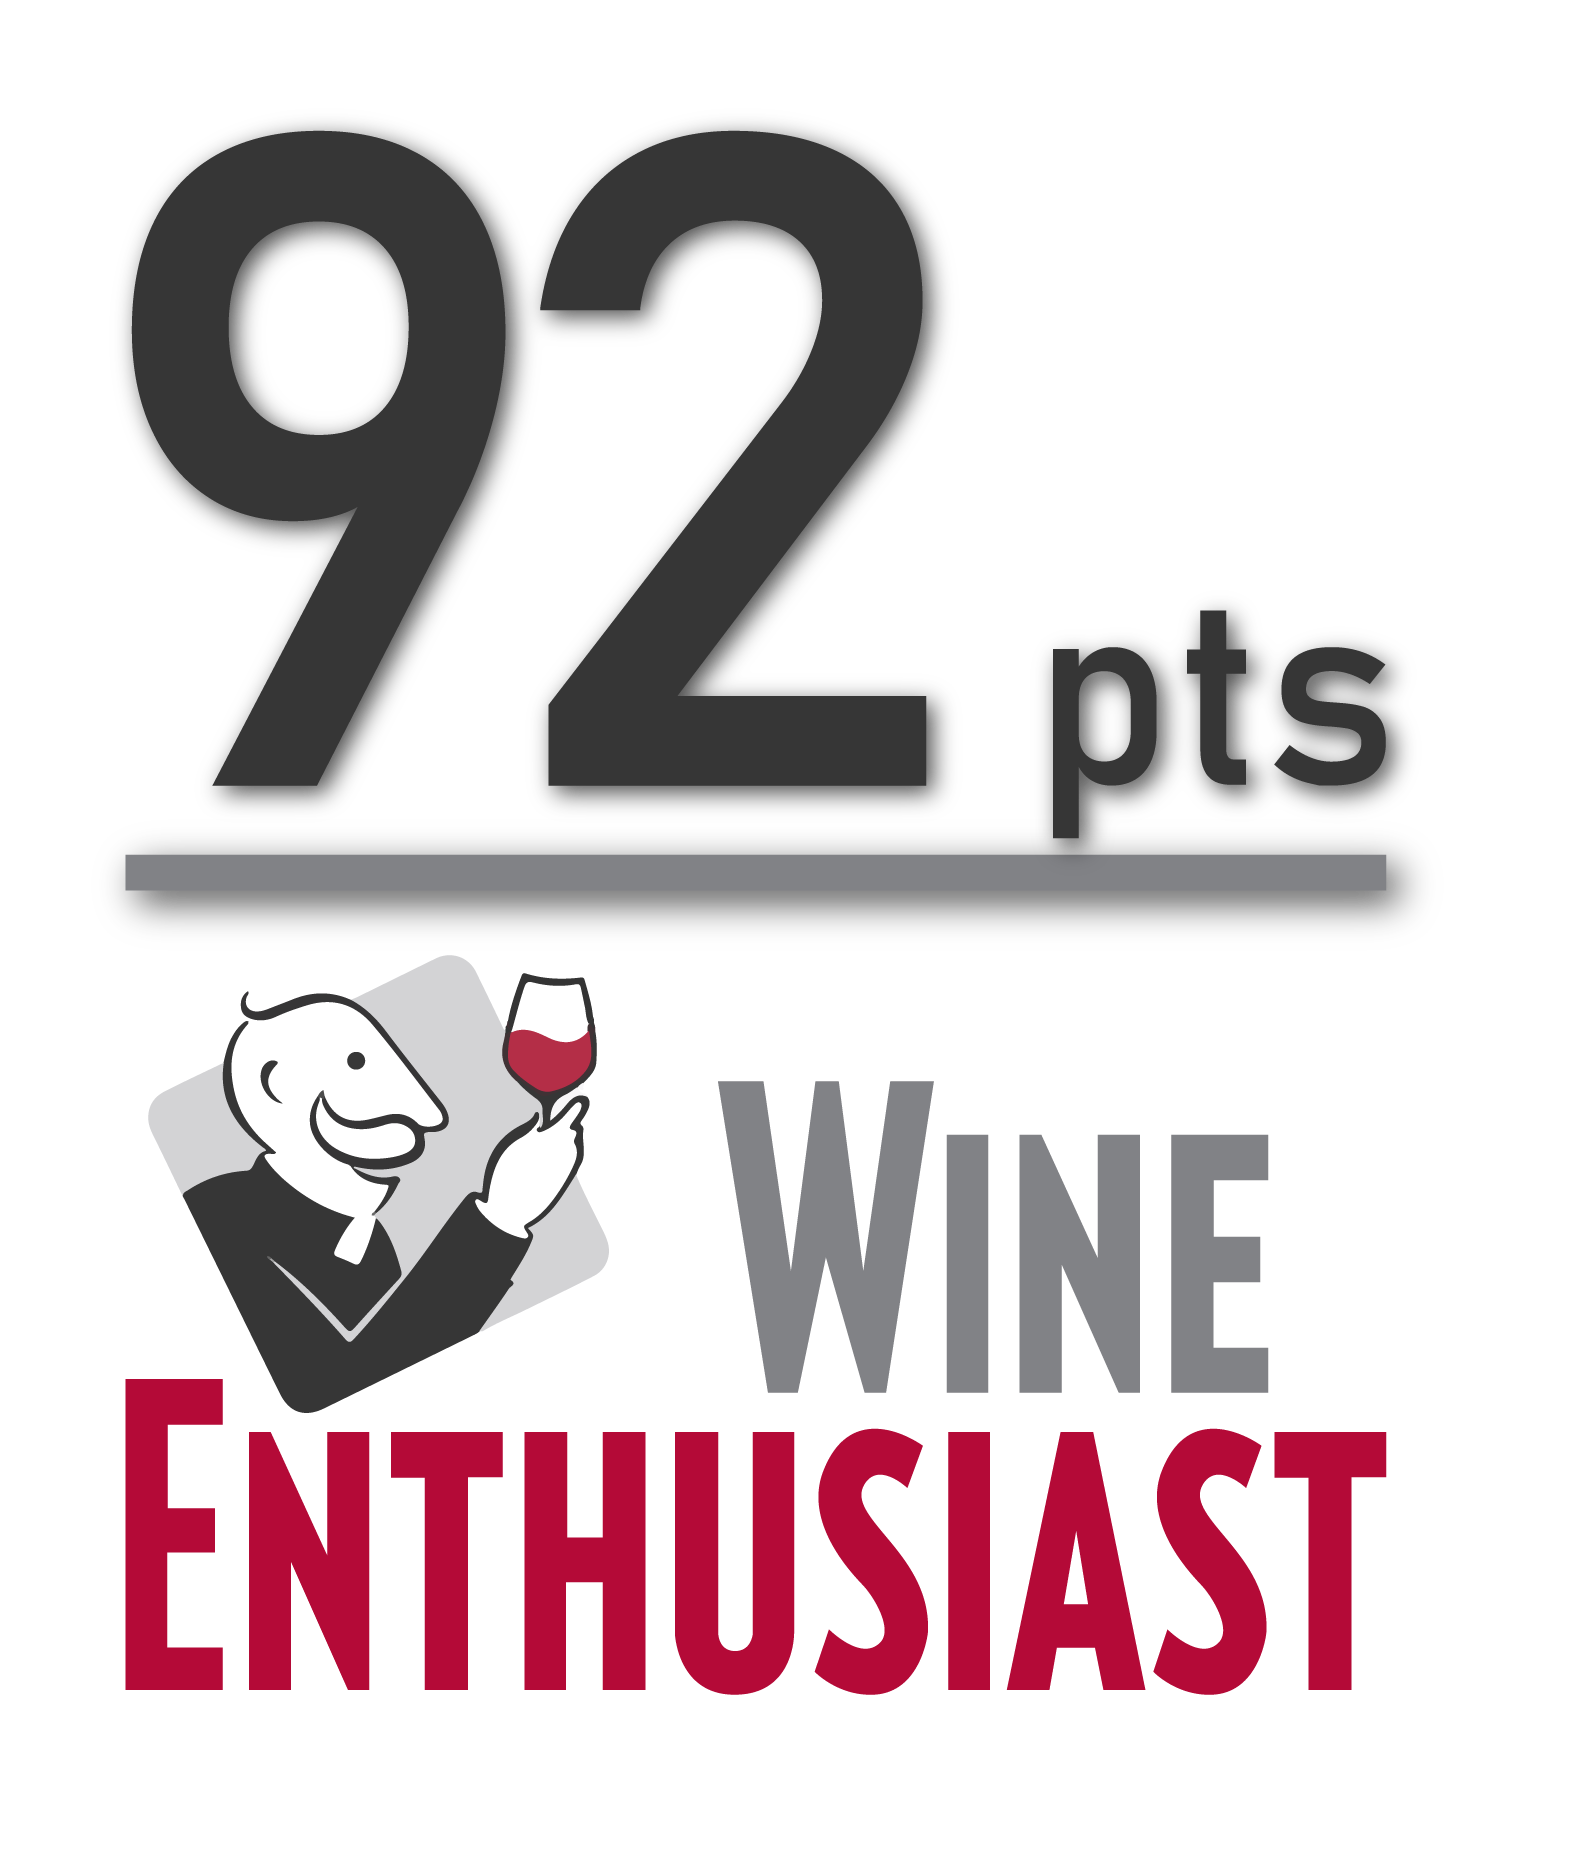 Wine Enthusiast - 92 points